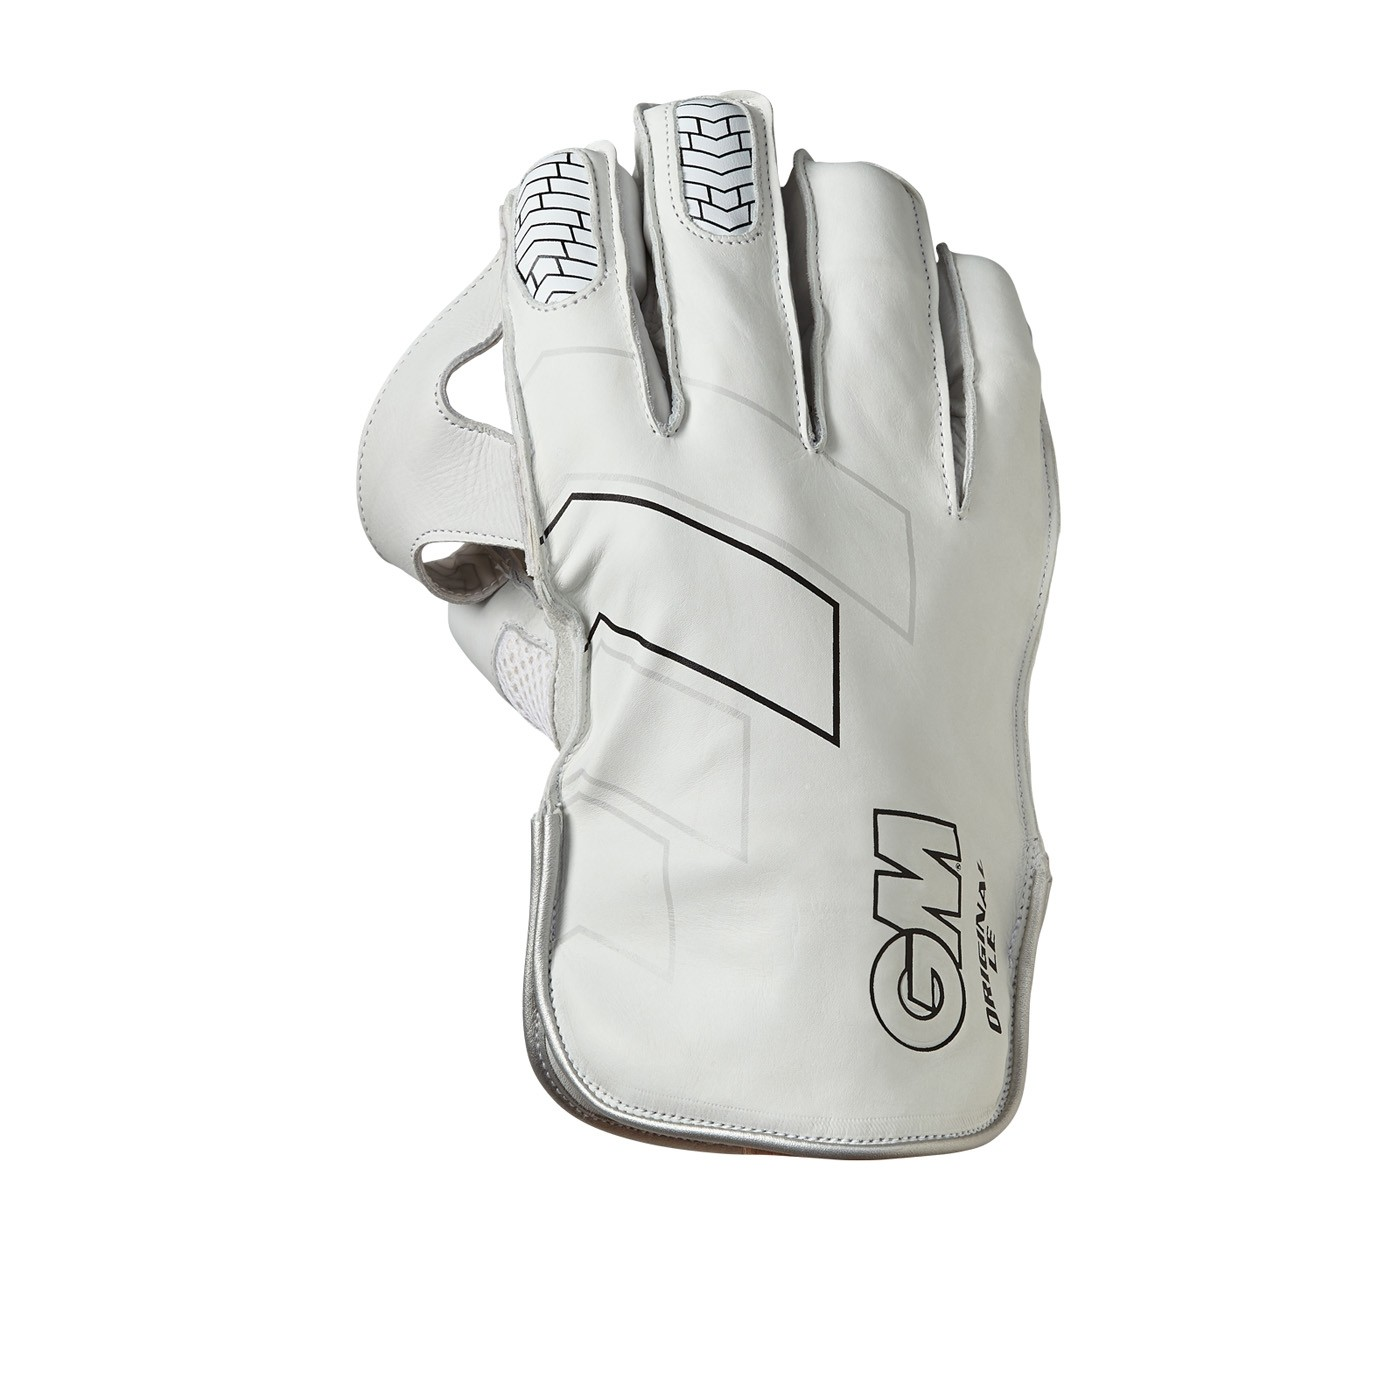 2020 Gunn and Moore Original Limited Edition Wicket Keeping Gloves